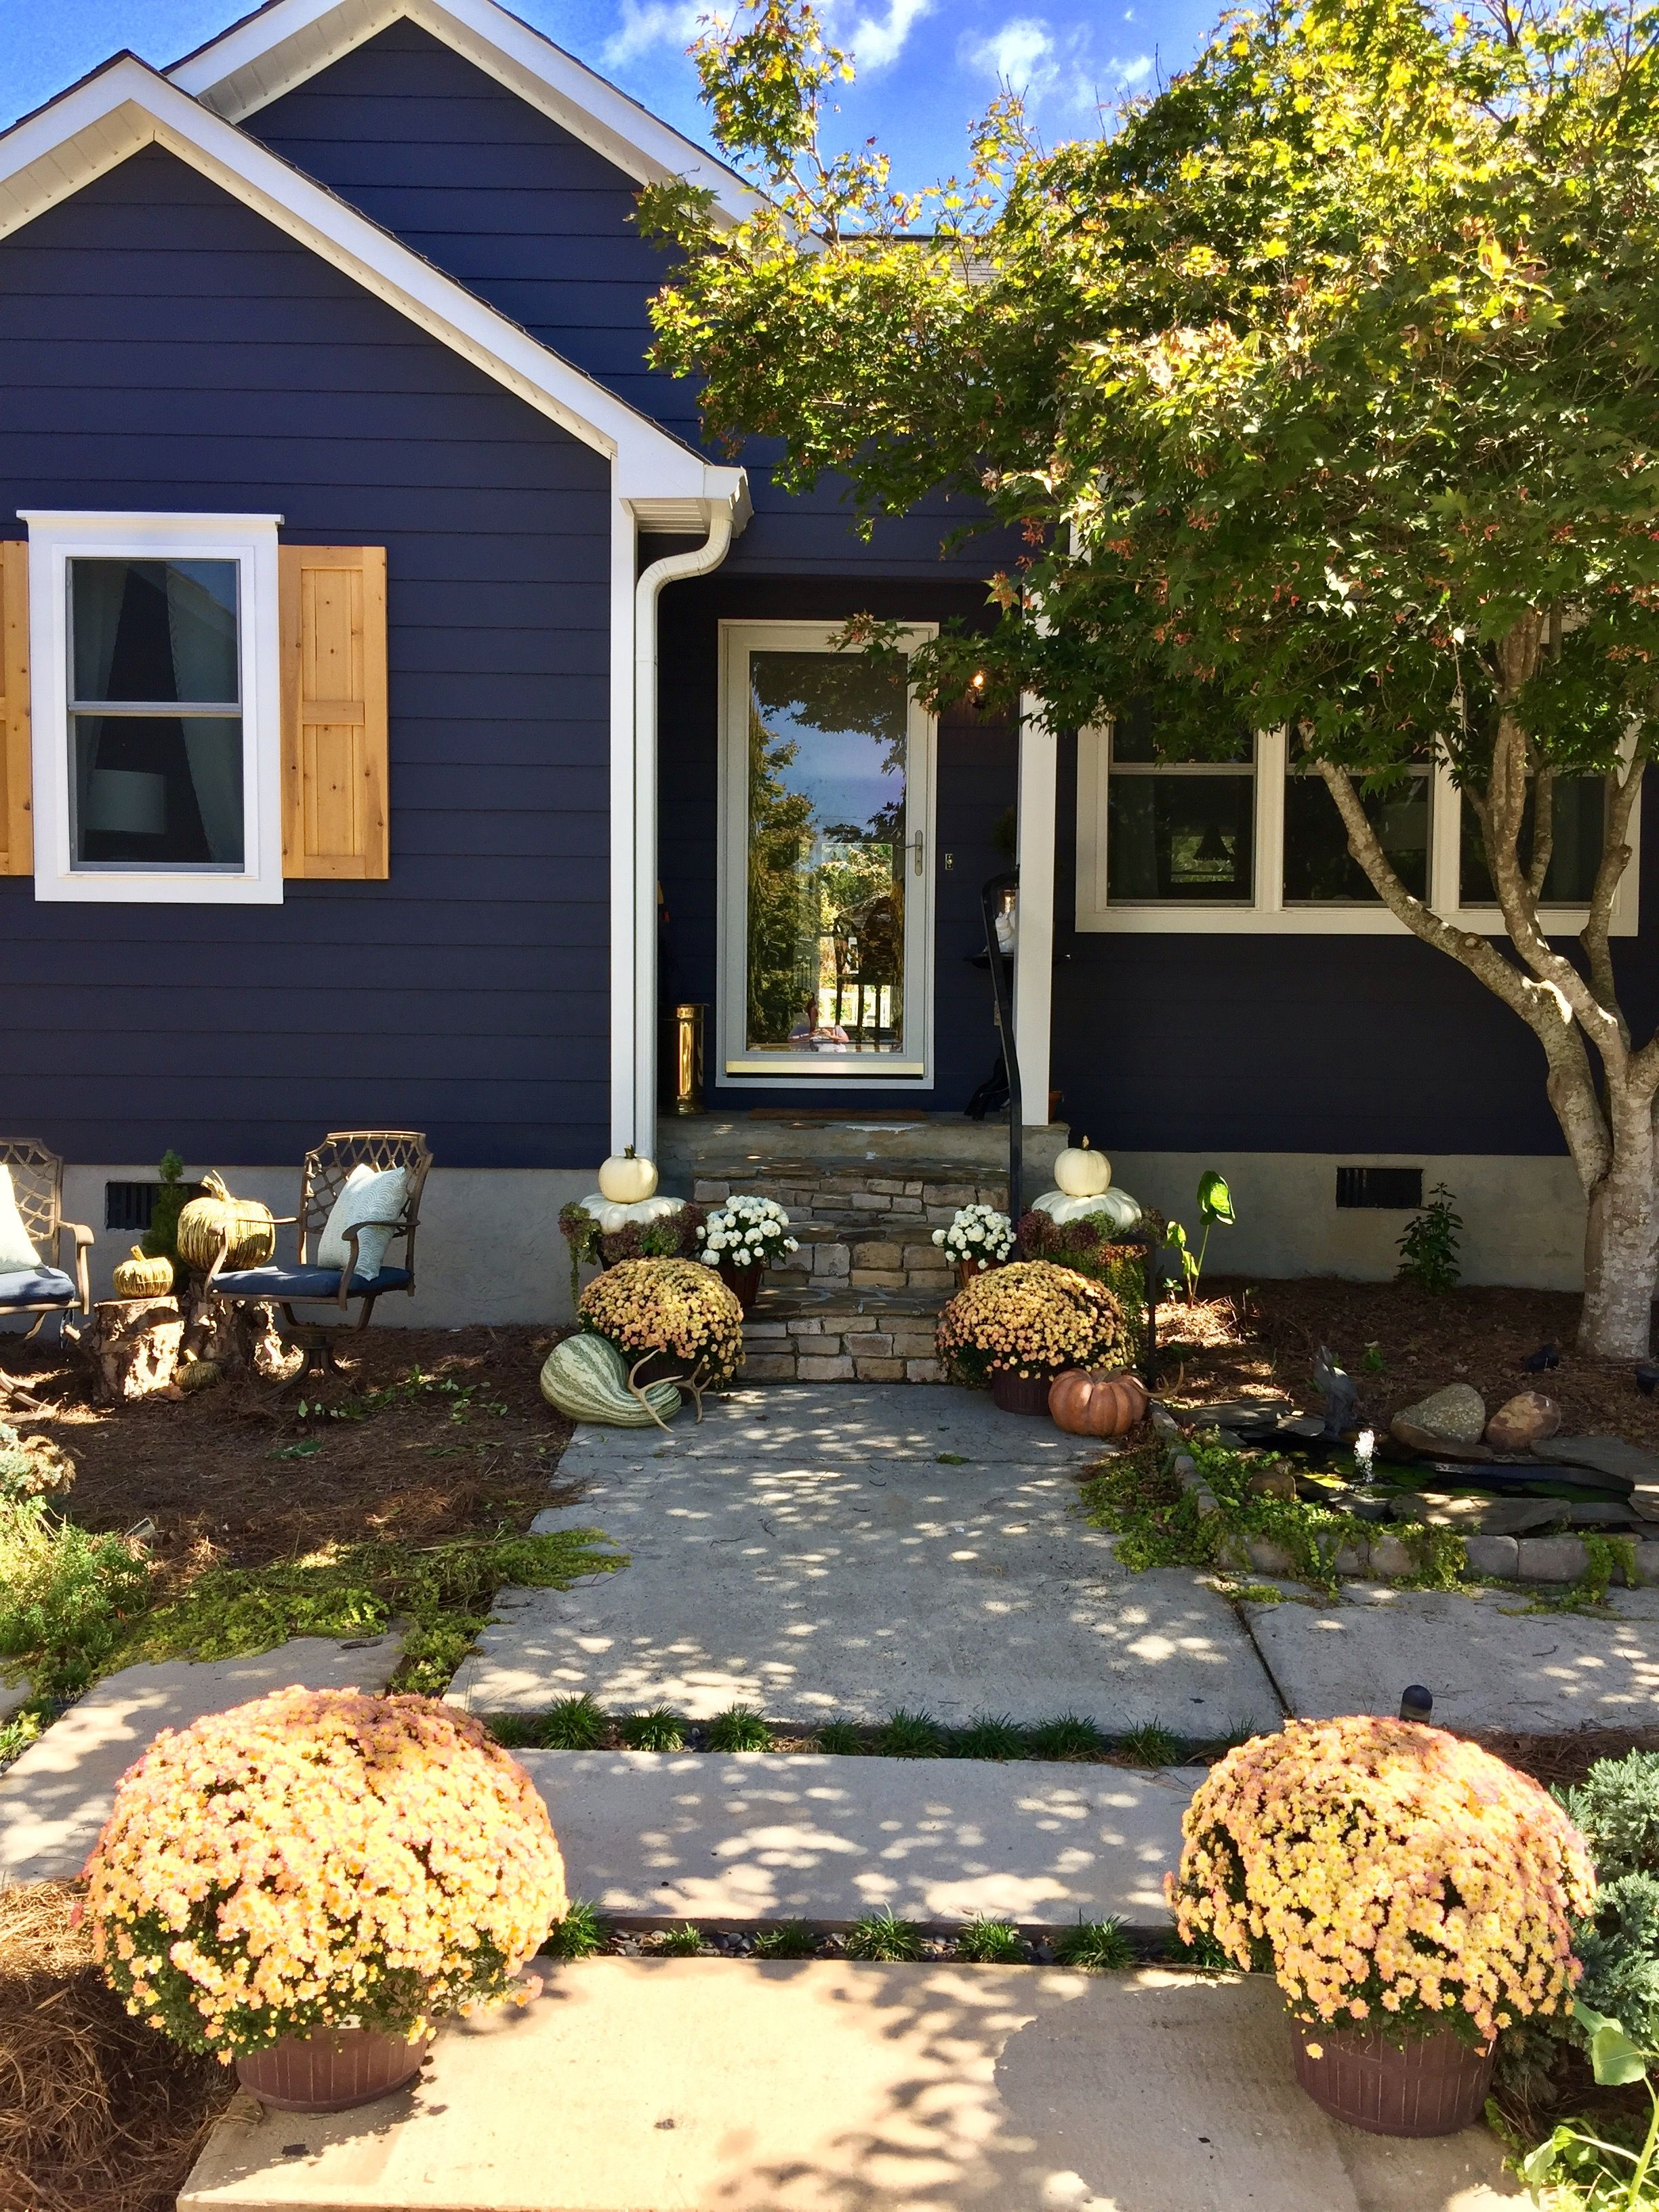 Home Ideas Exterior Homes And House Beautiful: Charcoal Blue By Sherwin Williams Exterior Is A Beautiful Navy. Fall Decor And Cedar D…